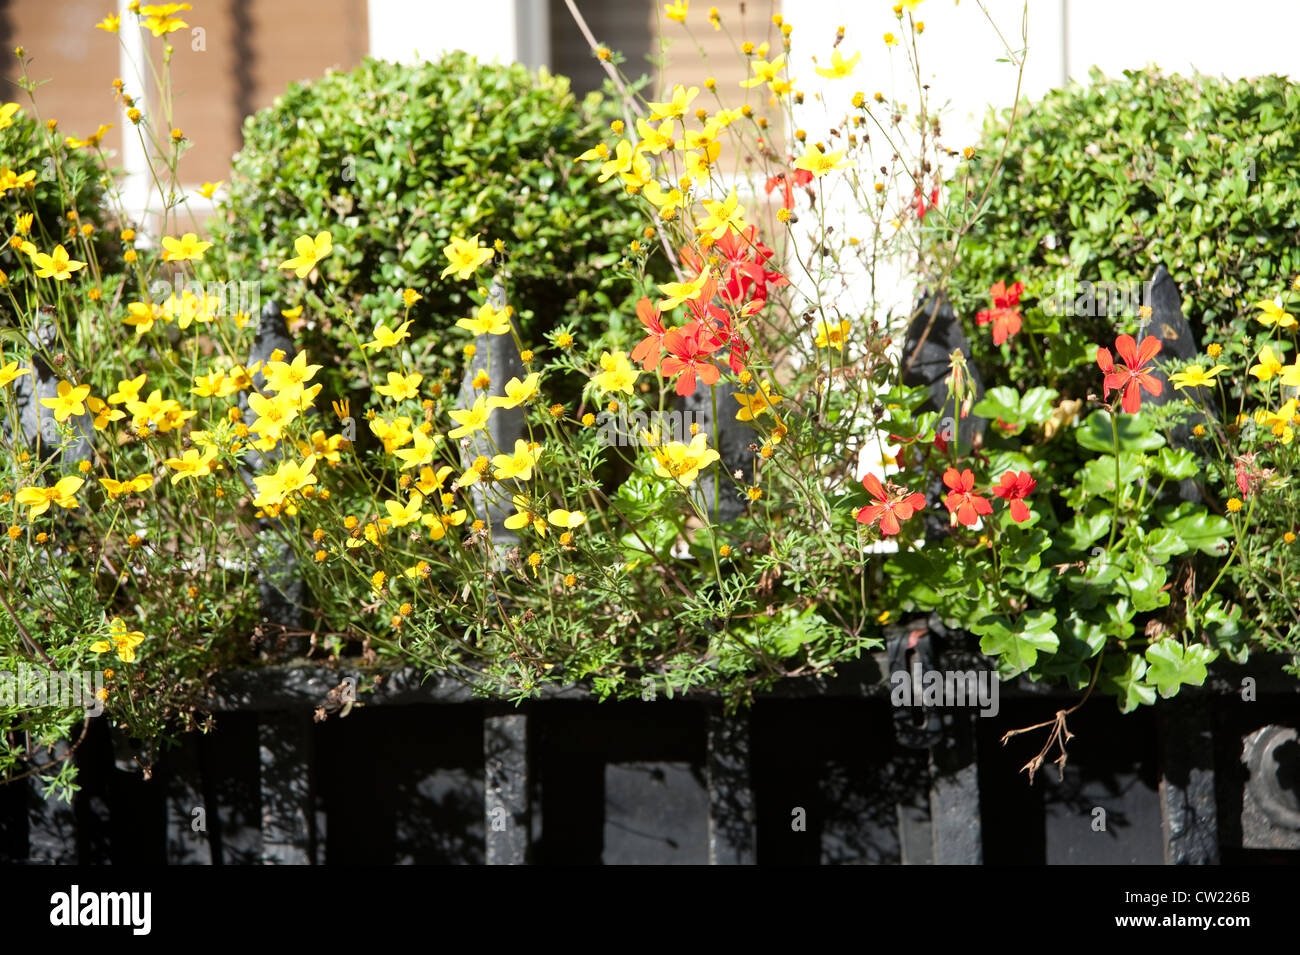 Window Box with red and yellow flowers - Stock Image